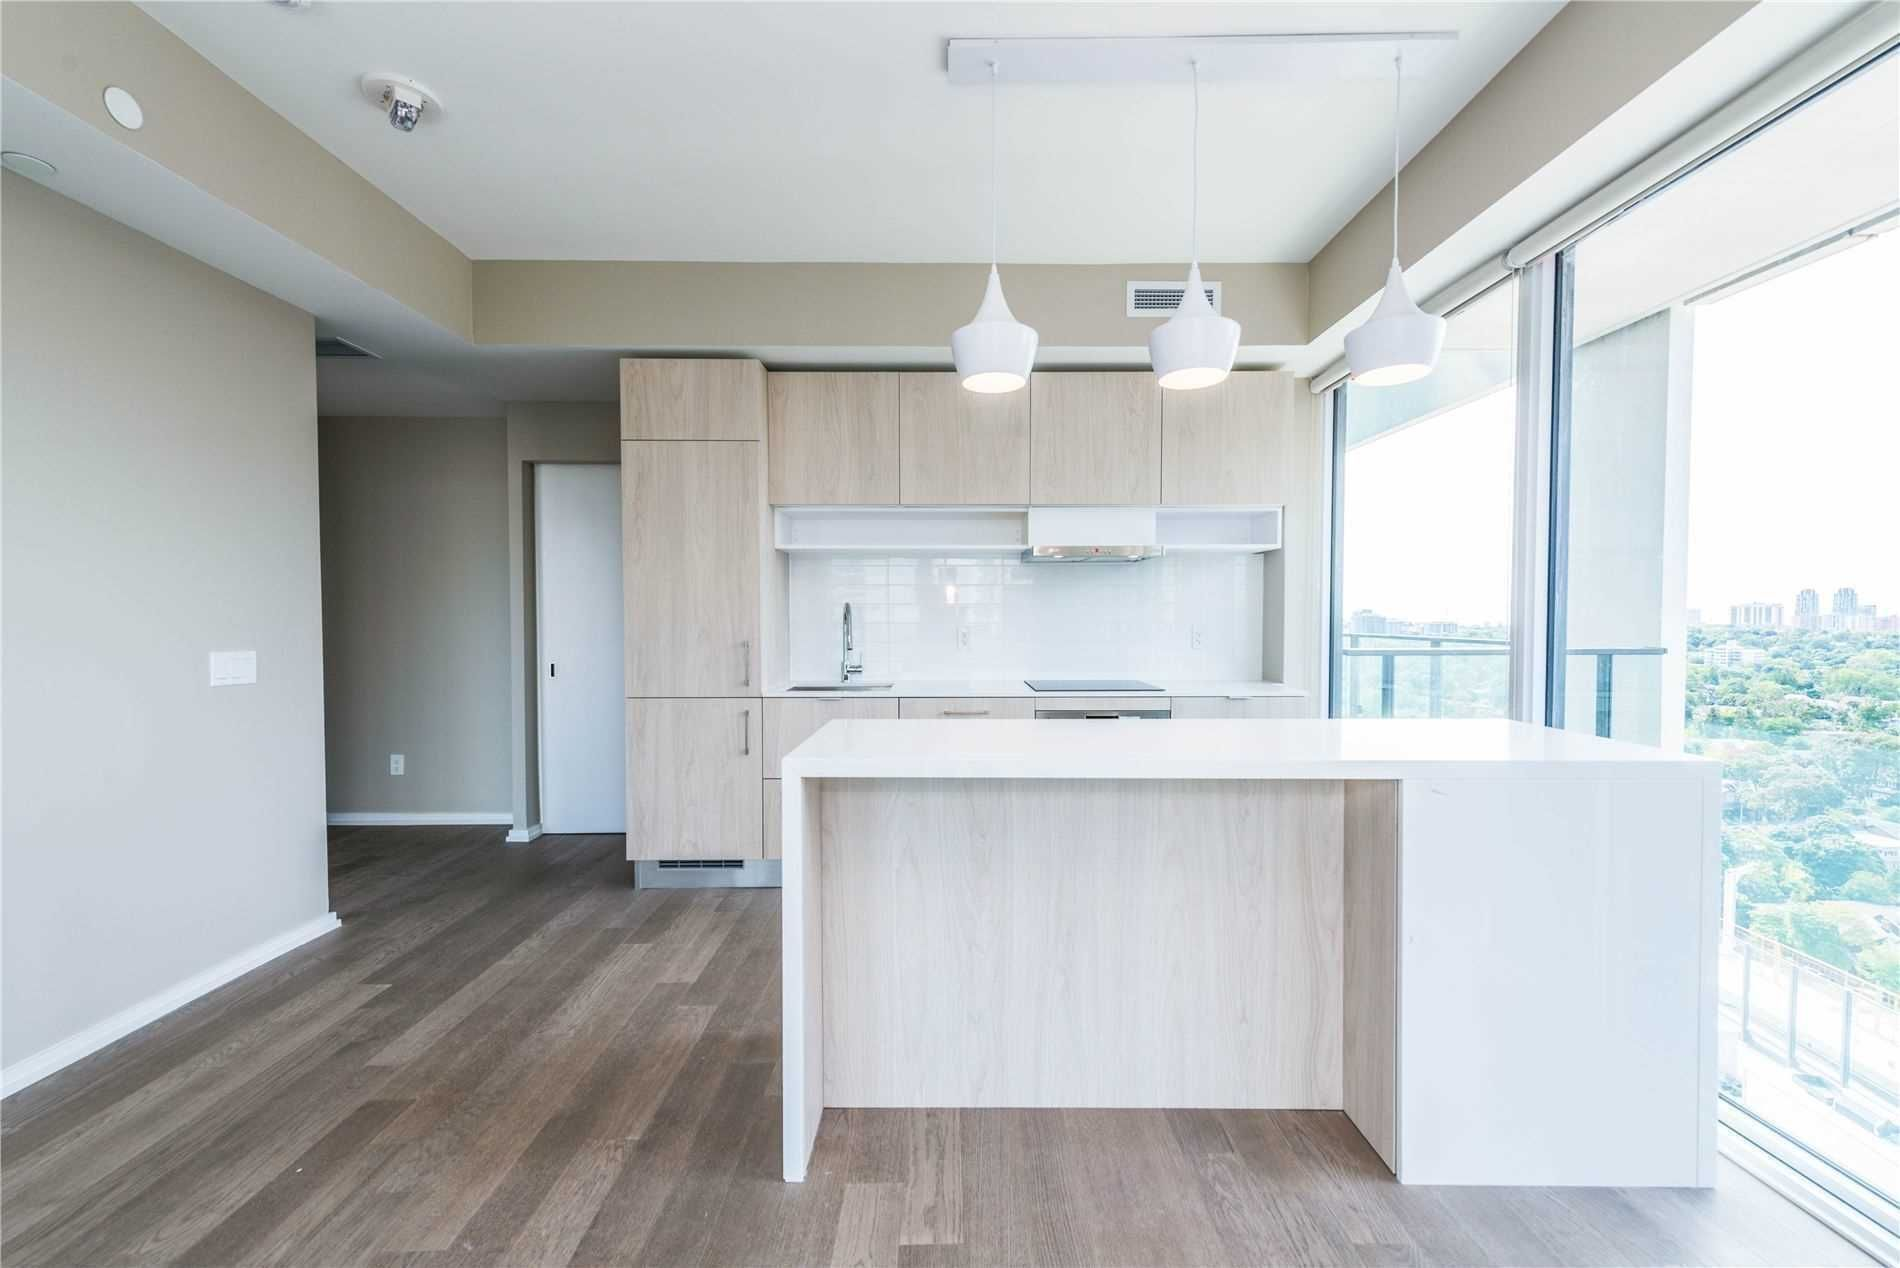 5 Soudan Ave, unit 2111 for rent in Toronto - image #2